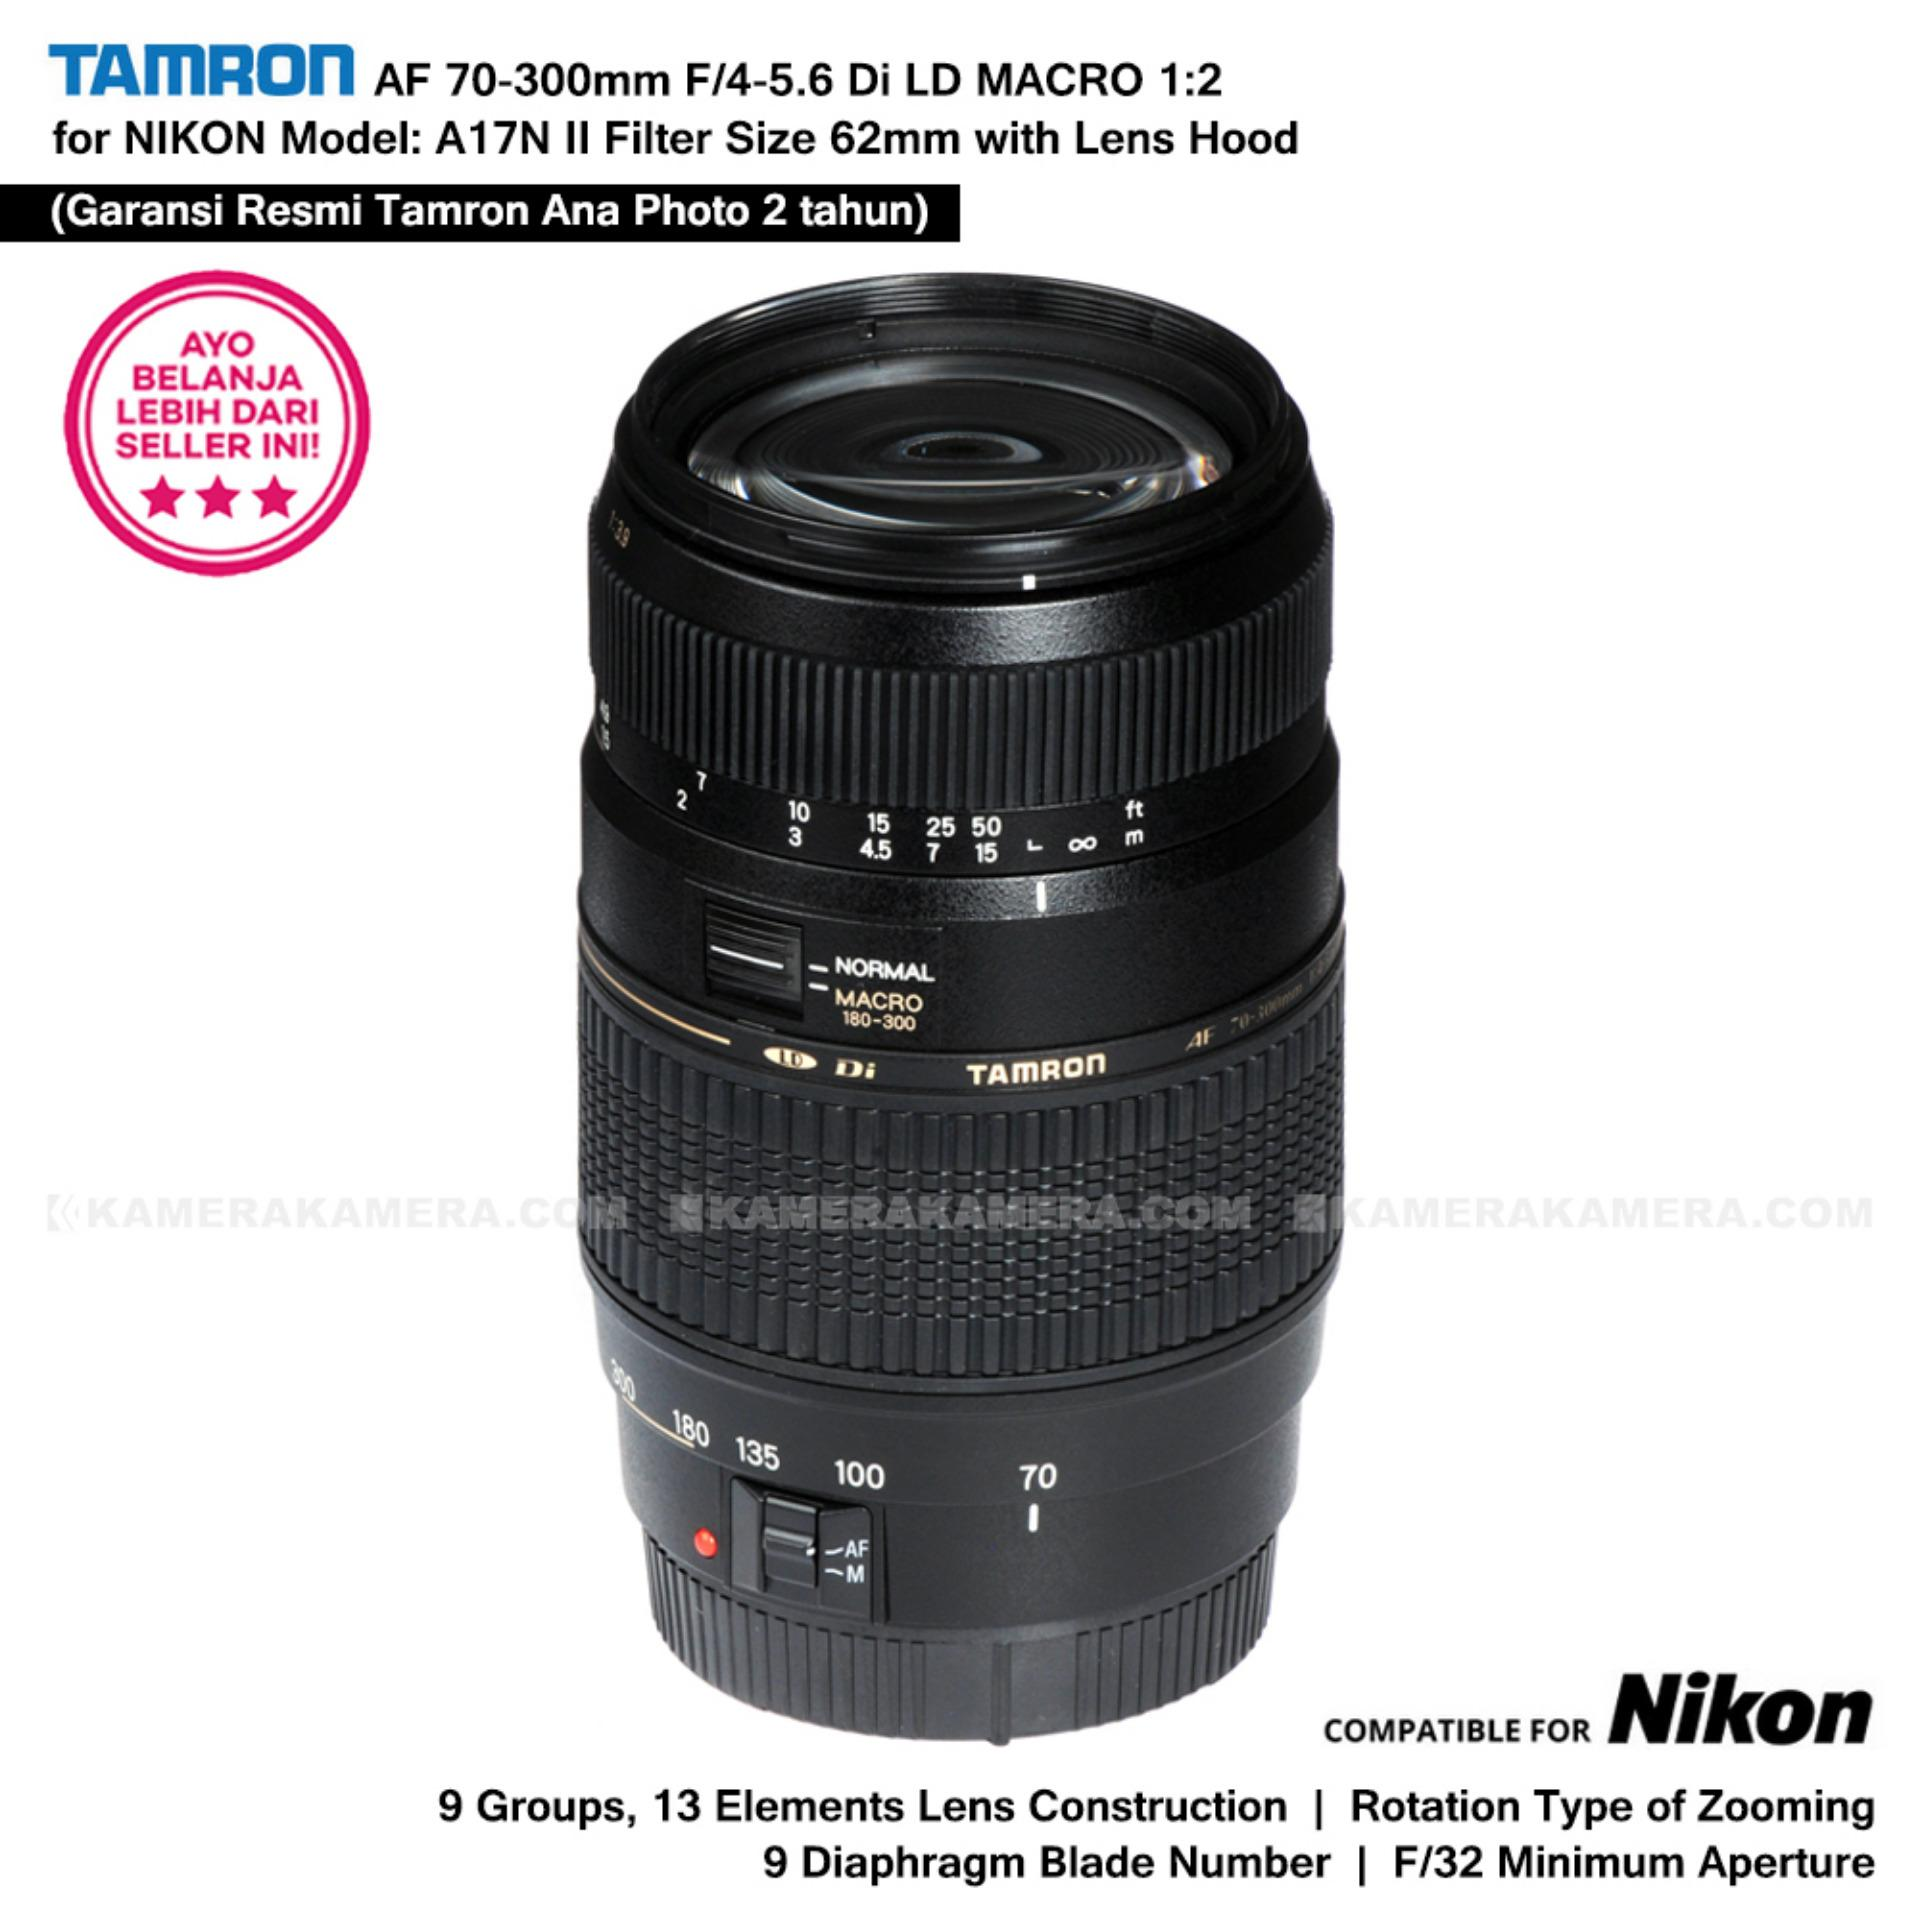 TAMRON AF 70-300mm F/4-5.6 Di LD MACRO 1:2 Model: A17N II Built In Motor for NIKON D with Lens Hood (Garansi Resmi Tamron - Ana Photo 2 tahun)